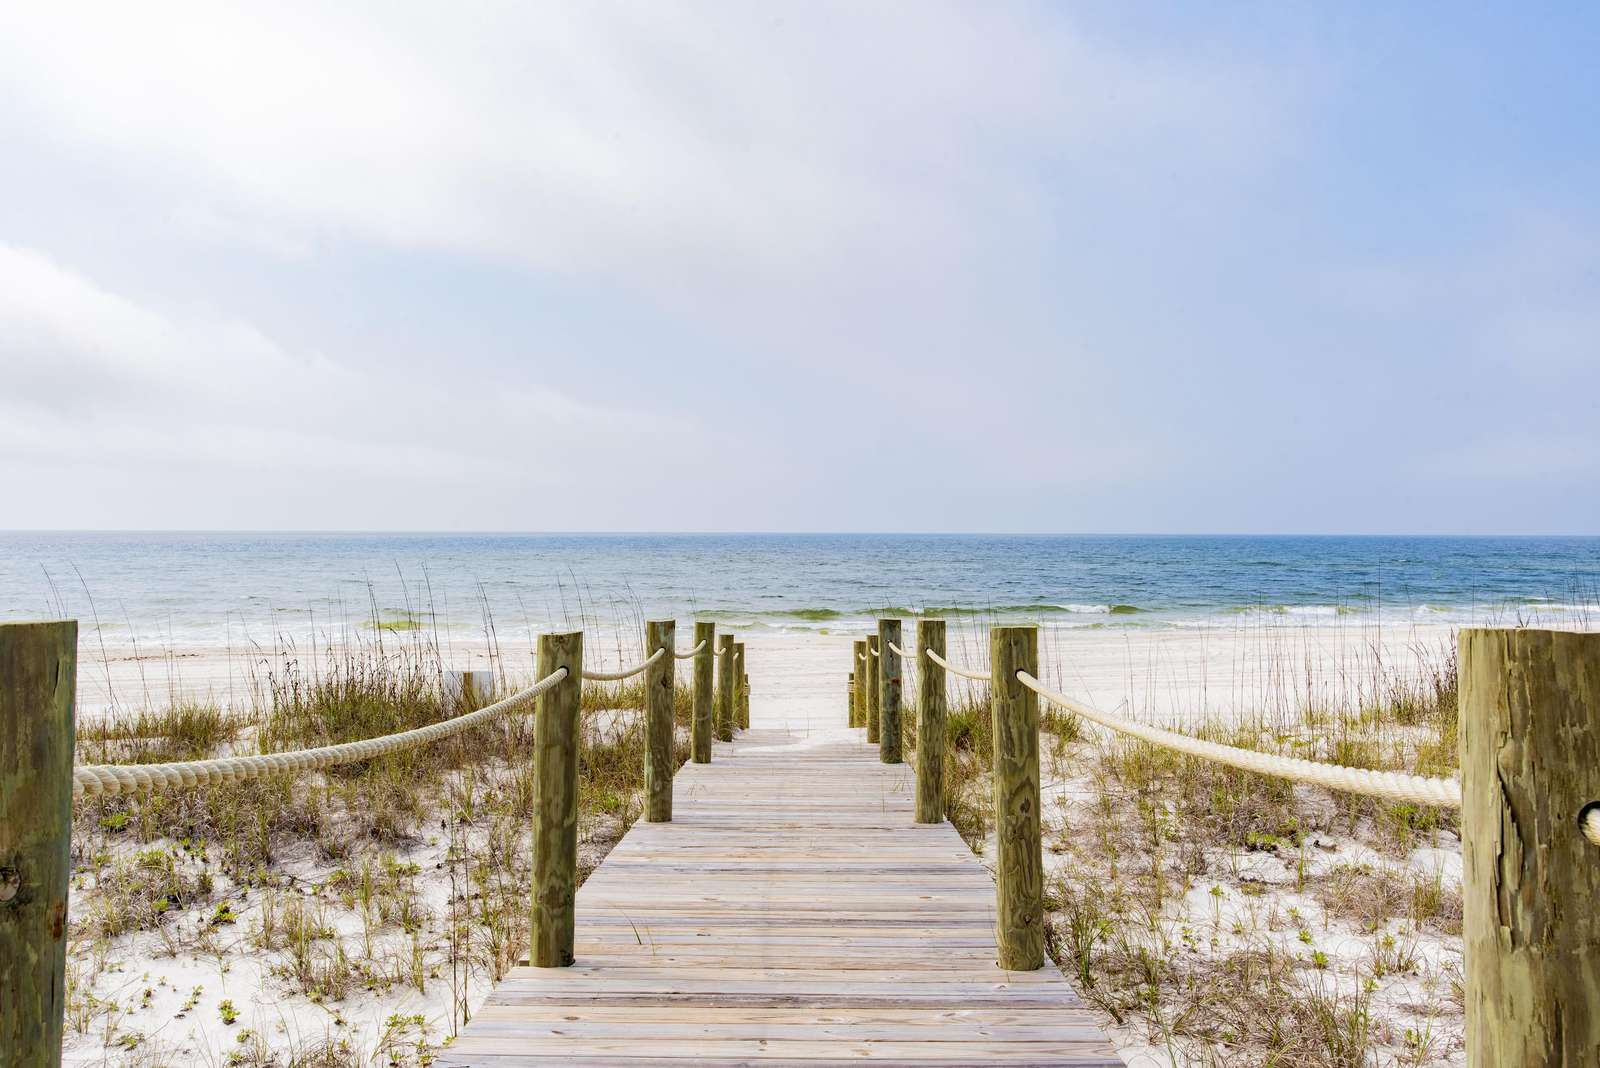 Recently added board walk to beach from house.